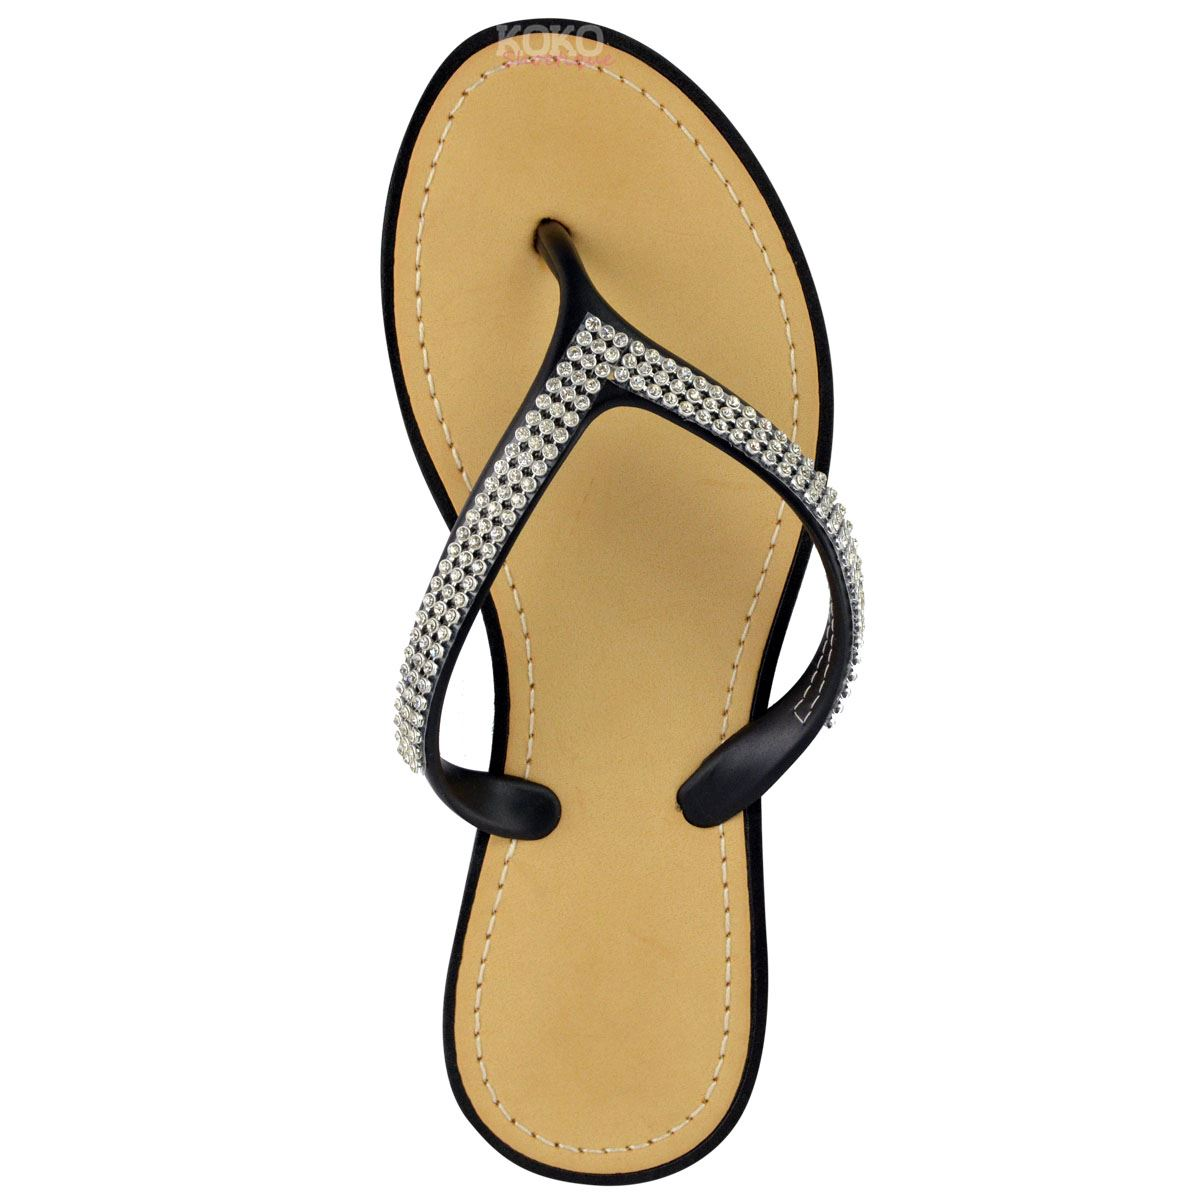 NEW-JELLY-SANDALS-WOMENS-LADIES-DIAMANTE-SUMMER-HOLIDAY-COMFORTS-FLIP-FLOPS-SIZE thumbnail 31